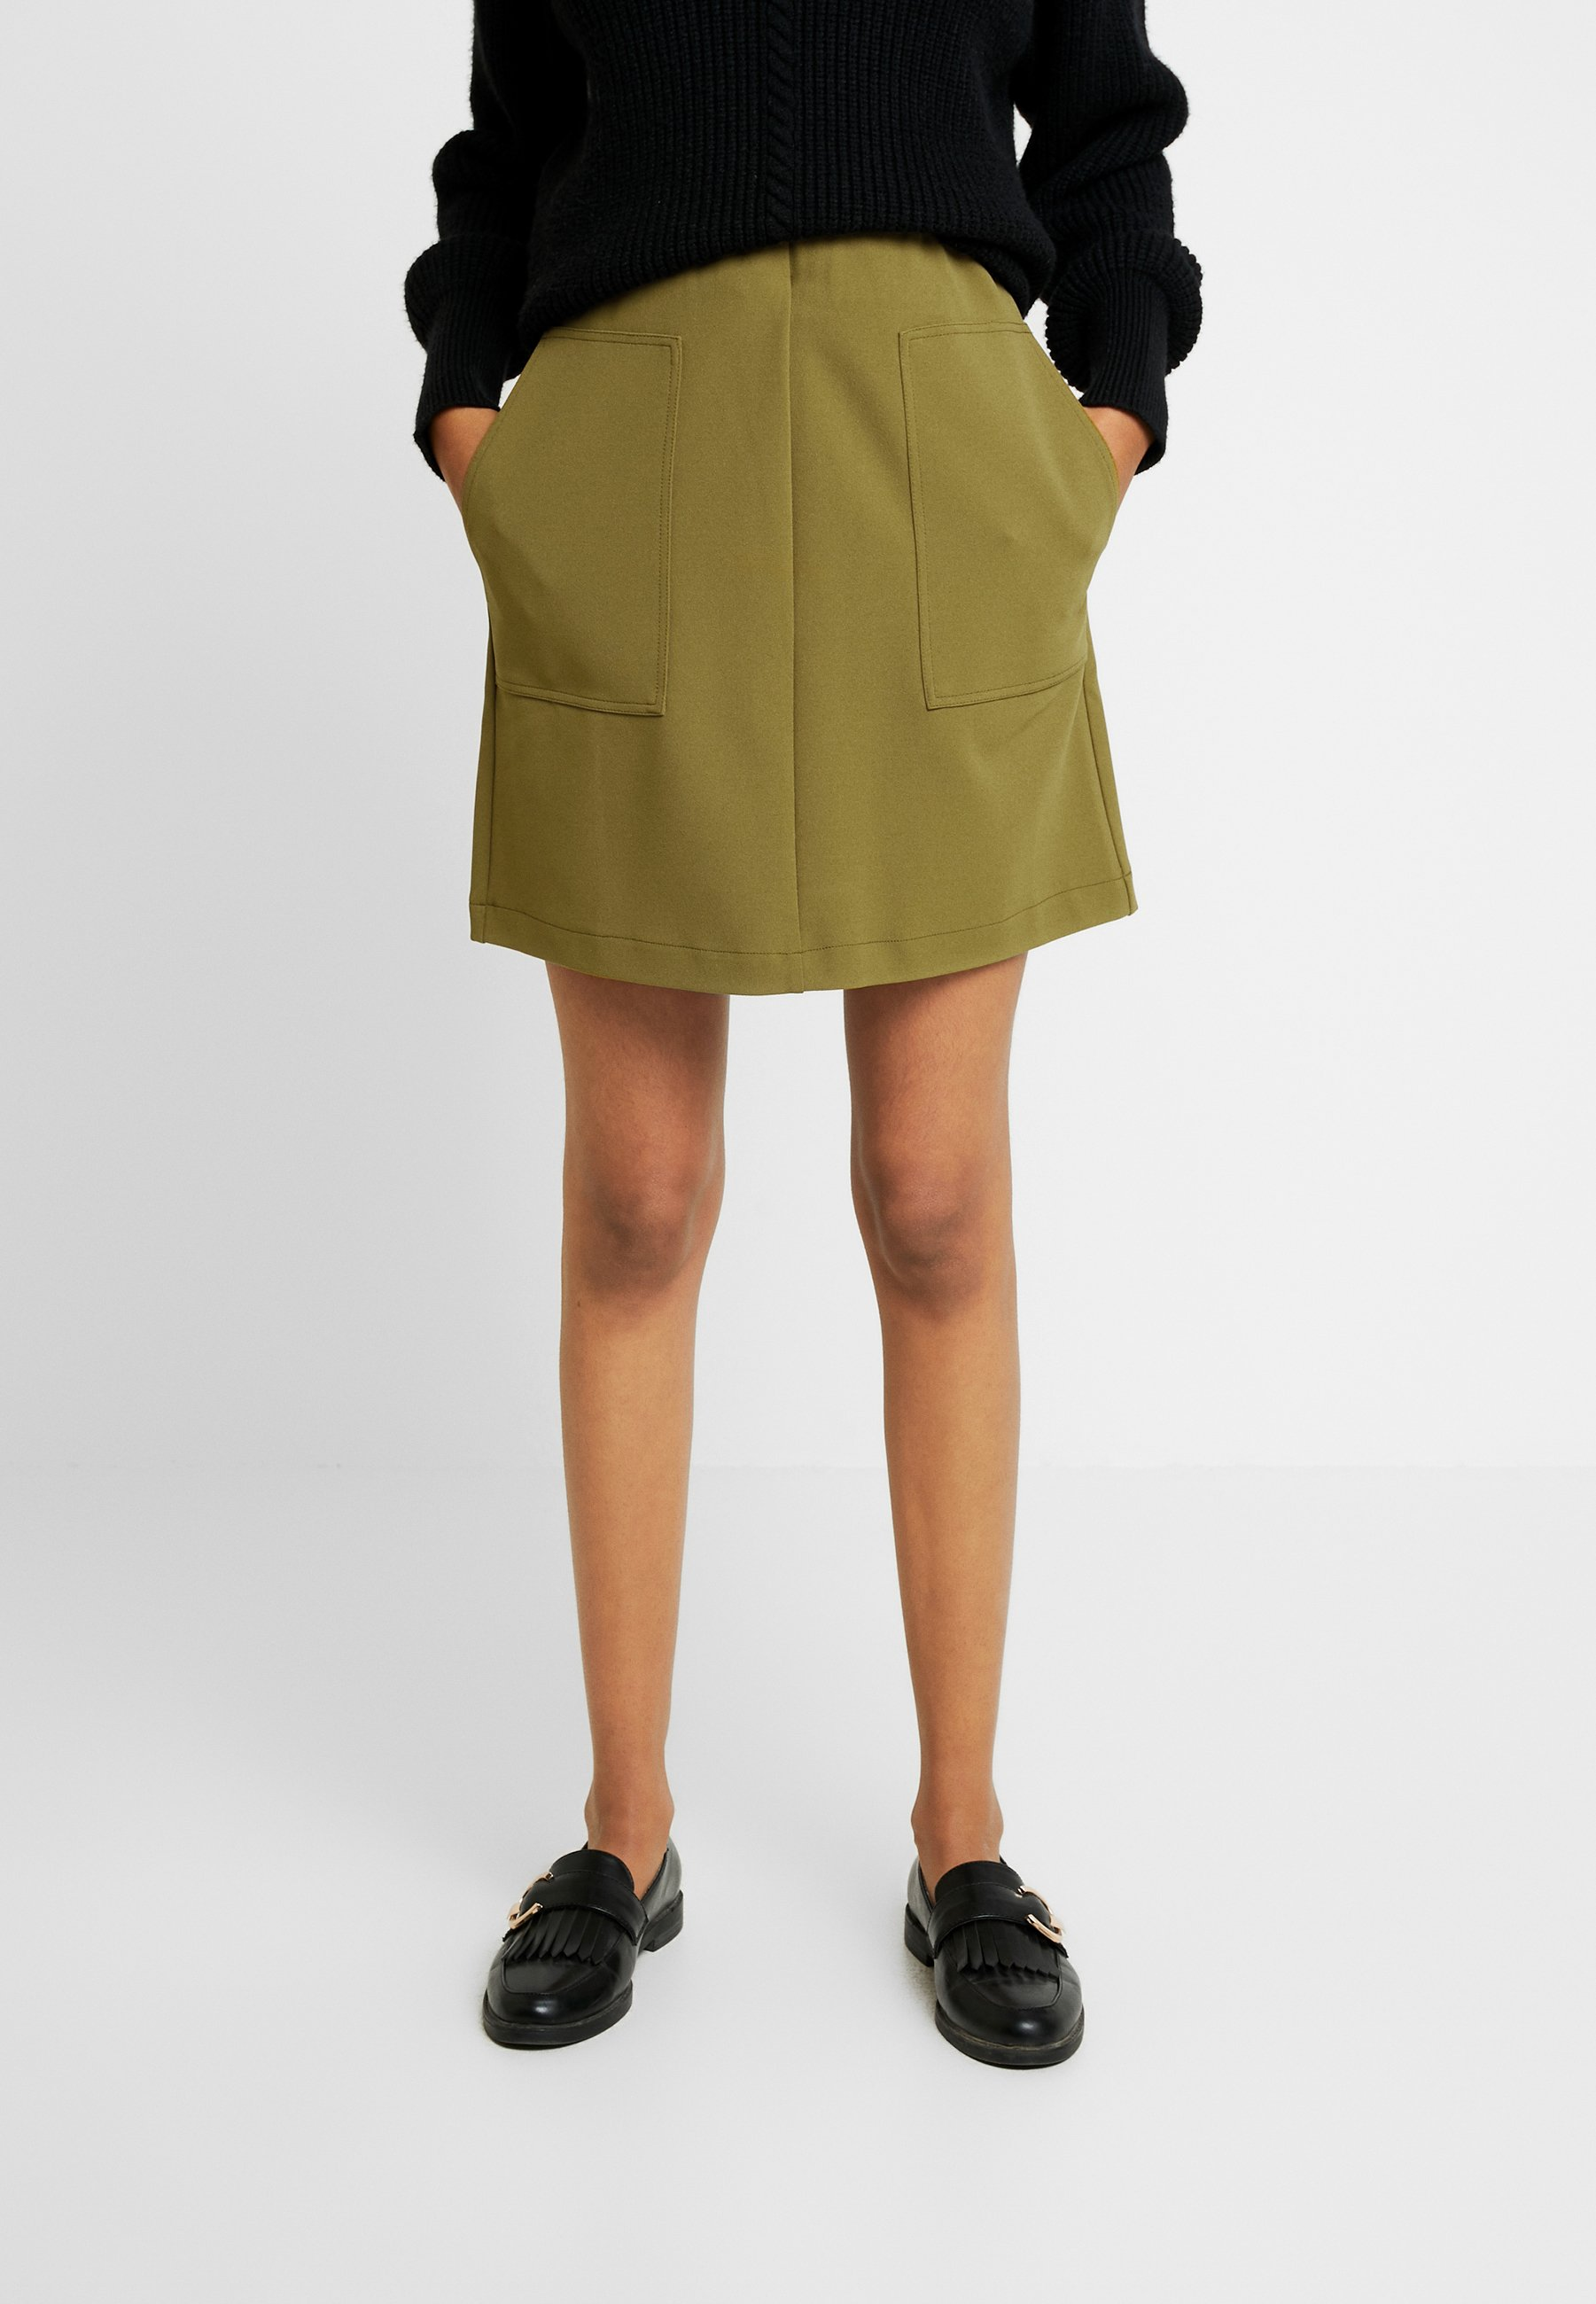 SkirtGonna Short Rebels A Nutria Campana Soft Amigo KJFTlc31